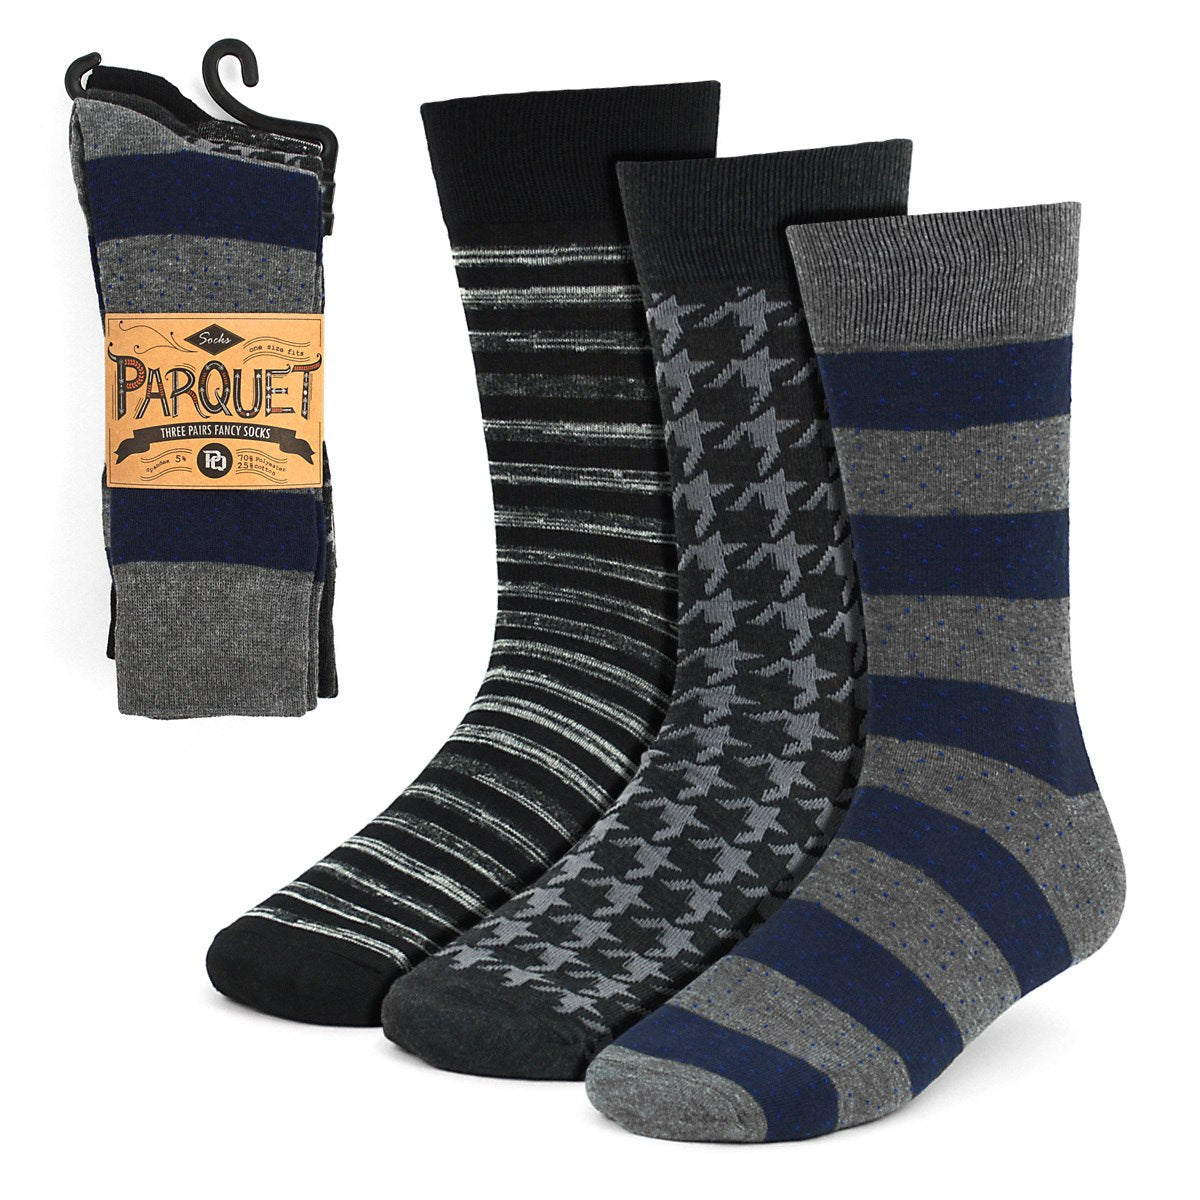 Dress Socks 3PKS-DRSY7 - Church Suits For Less